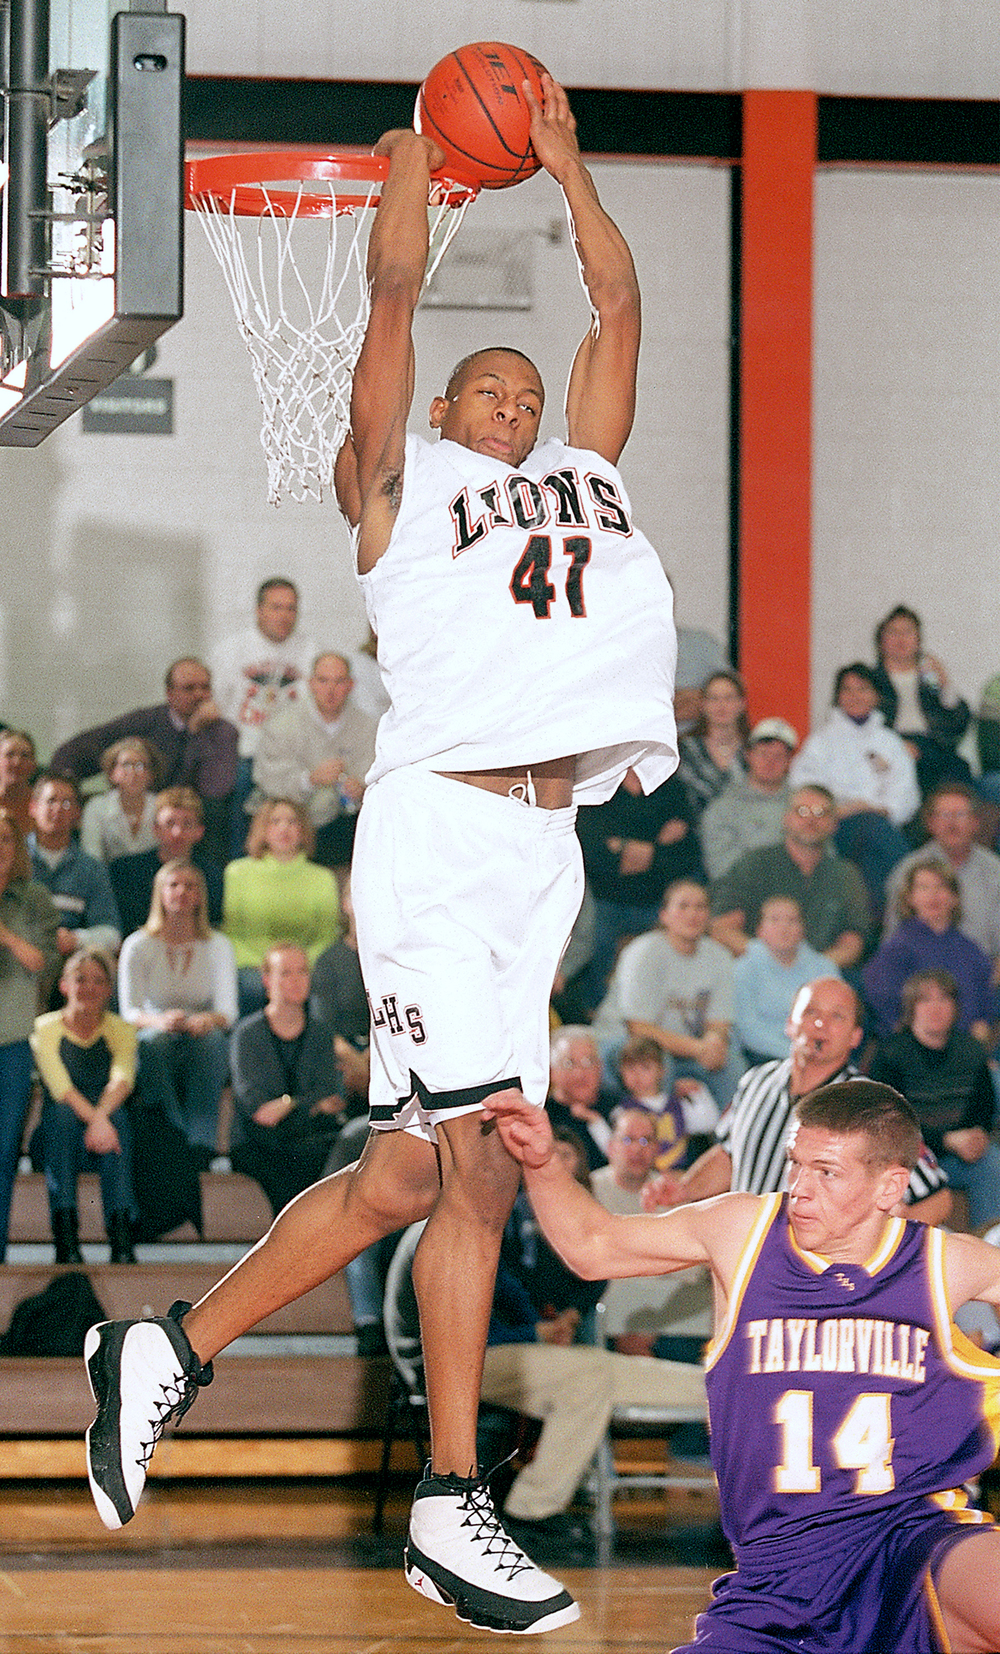 Andre Iguodala couldn't get this dunk to go down, but that was about the only thing that went wrong for Lanphier during a game with Taylorville, Feb. 1, 2002. File/The State Journal-Register